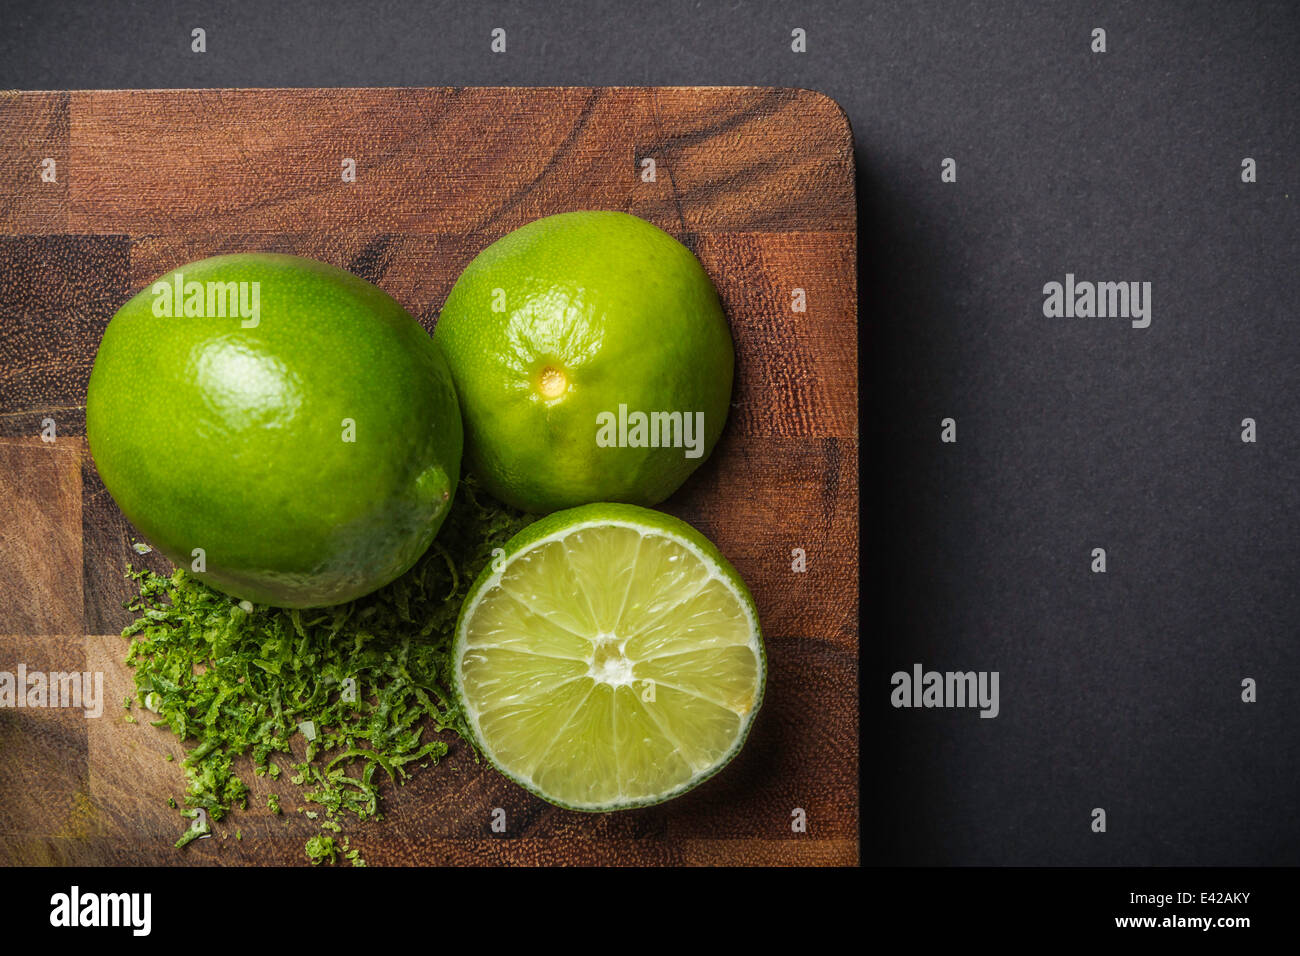 Ingredient for making green curry paste - lime - Stock Image